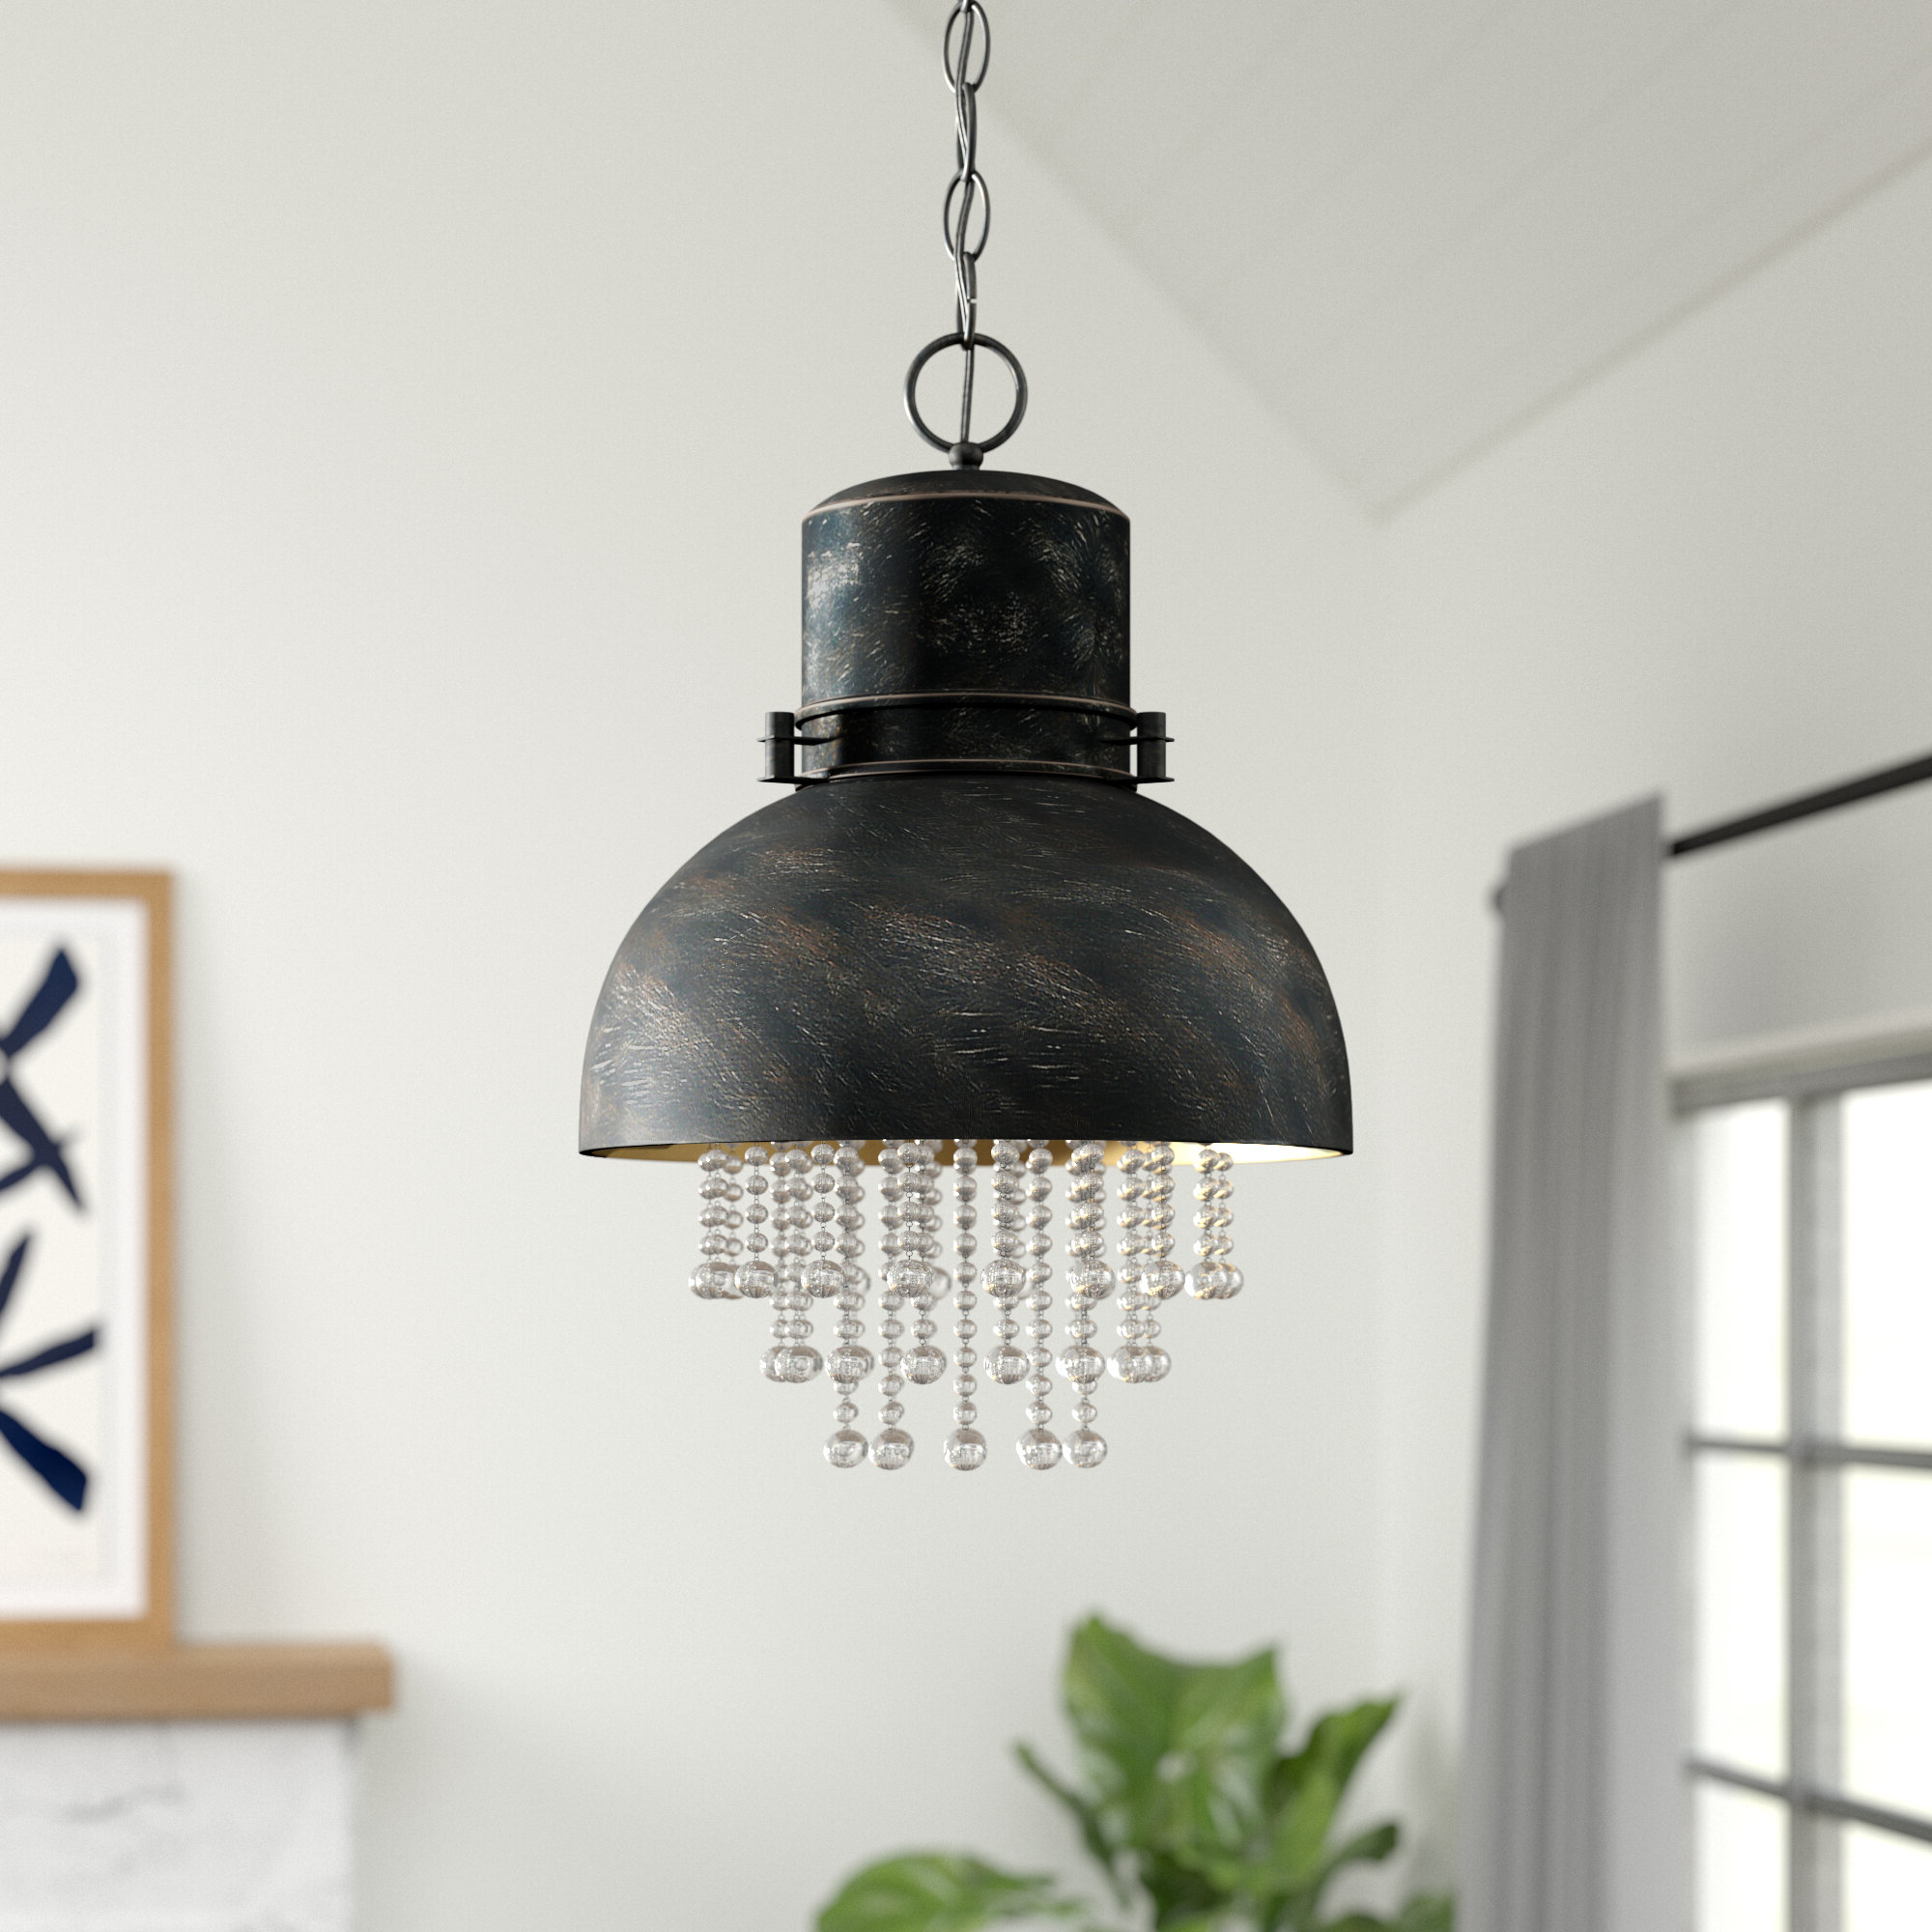 Southlake 1 Light Single Dome Pendants Intended For Well Known Monadnock 1 Light Single Dome Pendant (View 15 of 25)